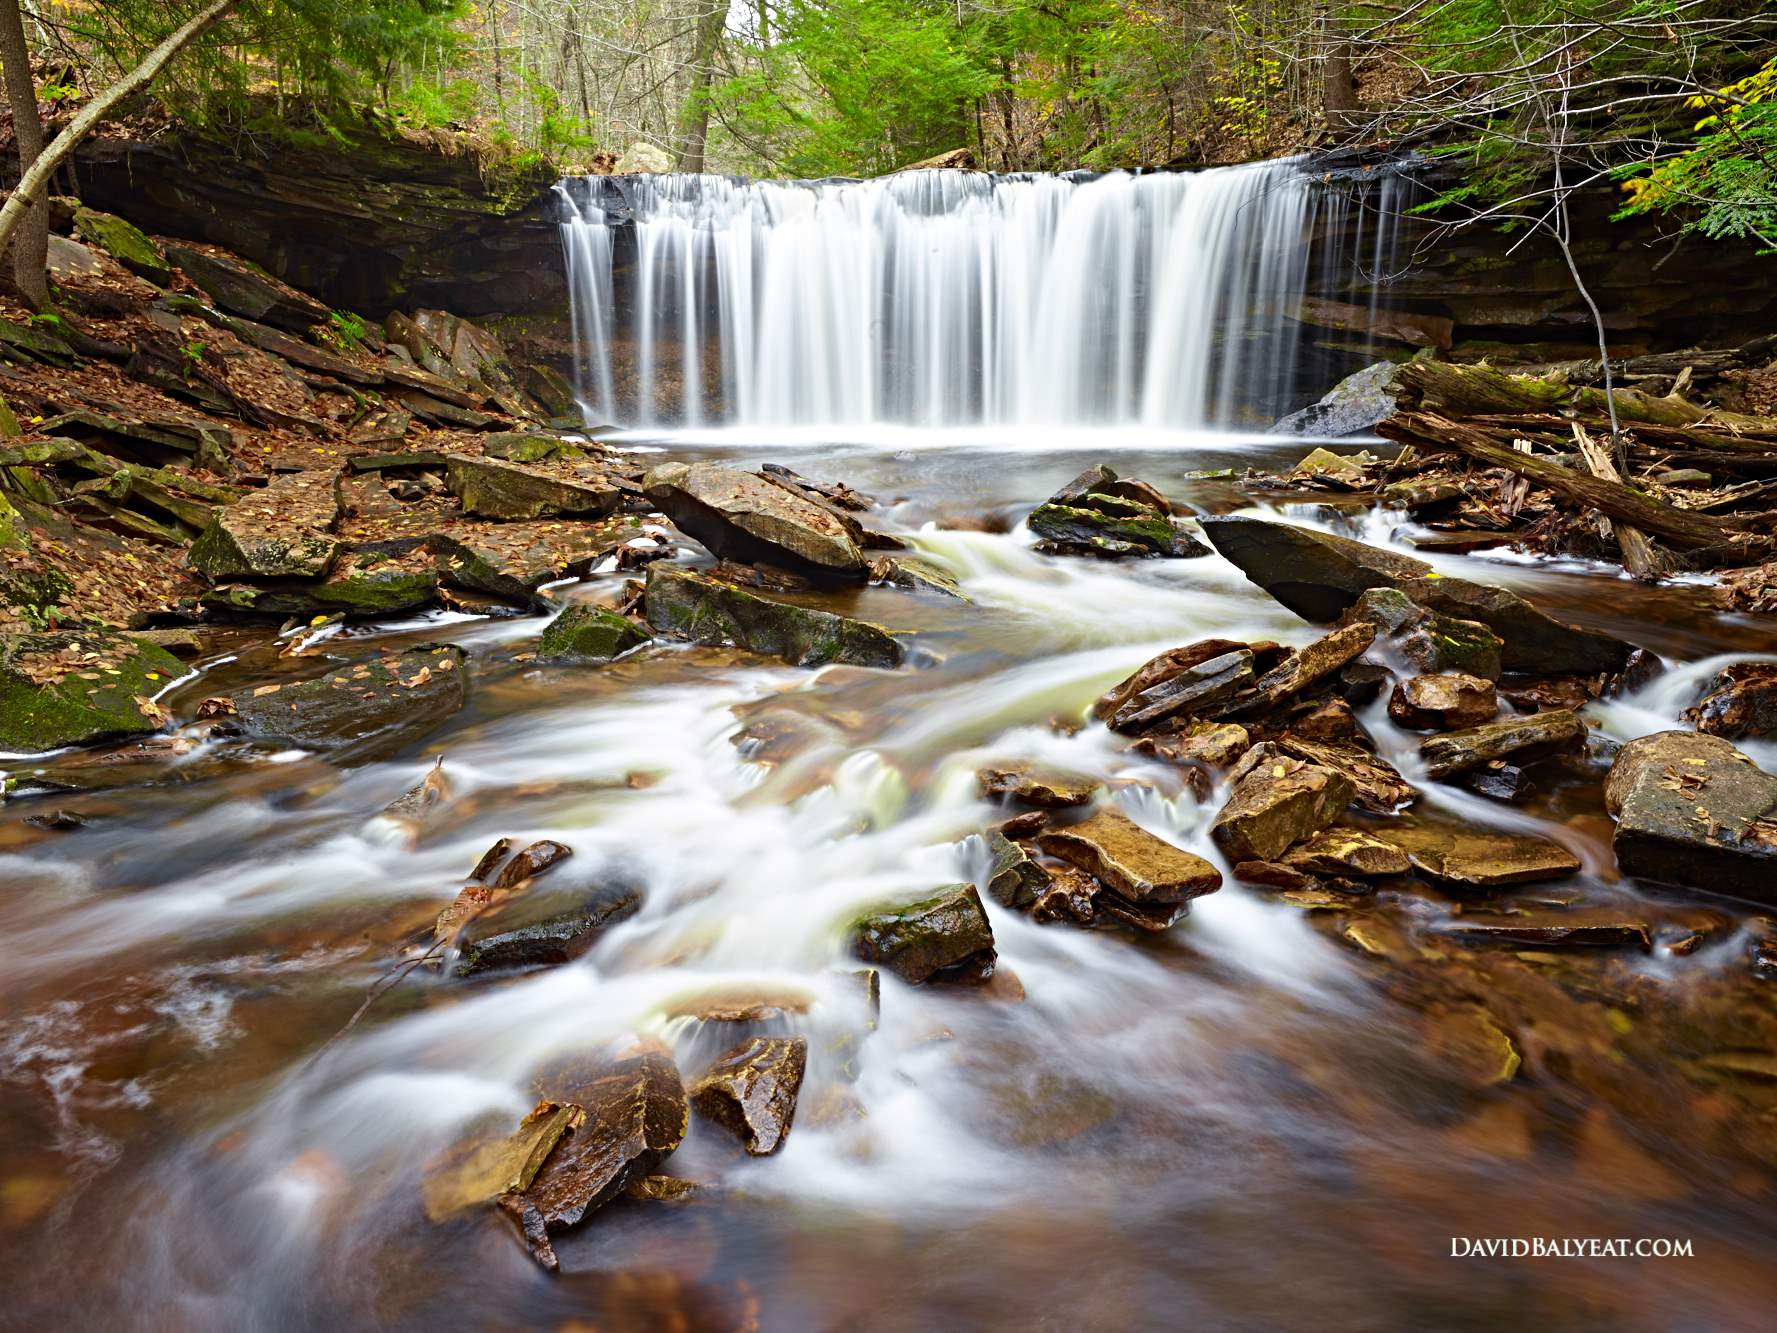 Ricketts Glen Autumn Fall Foliage waterfall high definition HD professional landscape photography